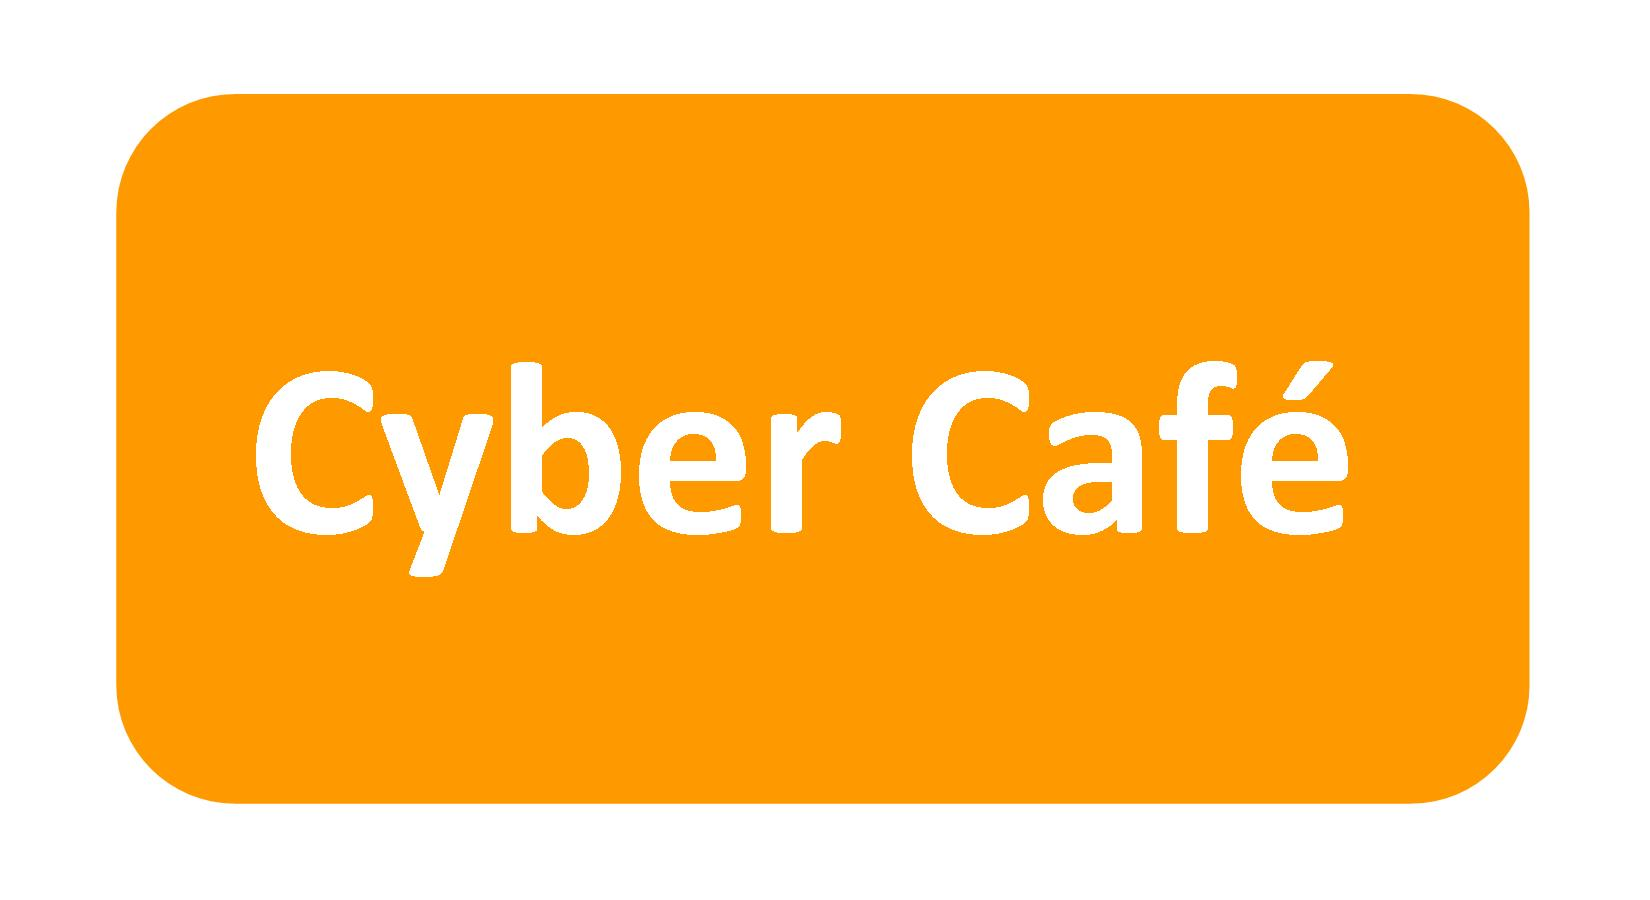 cyber cafe button